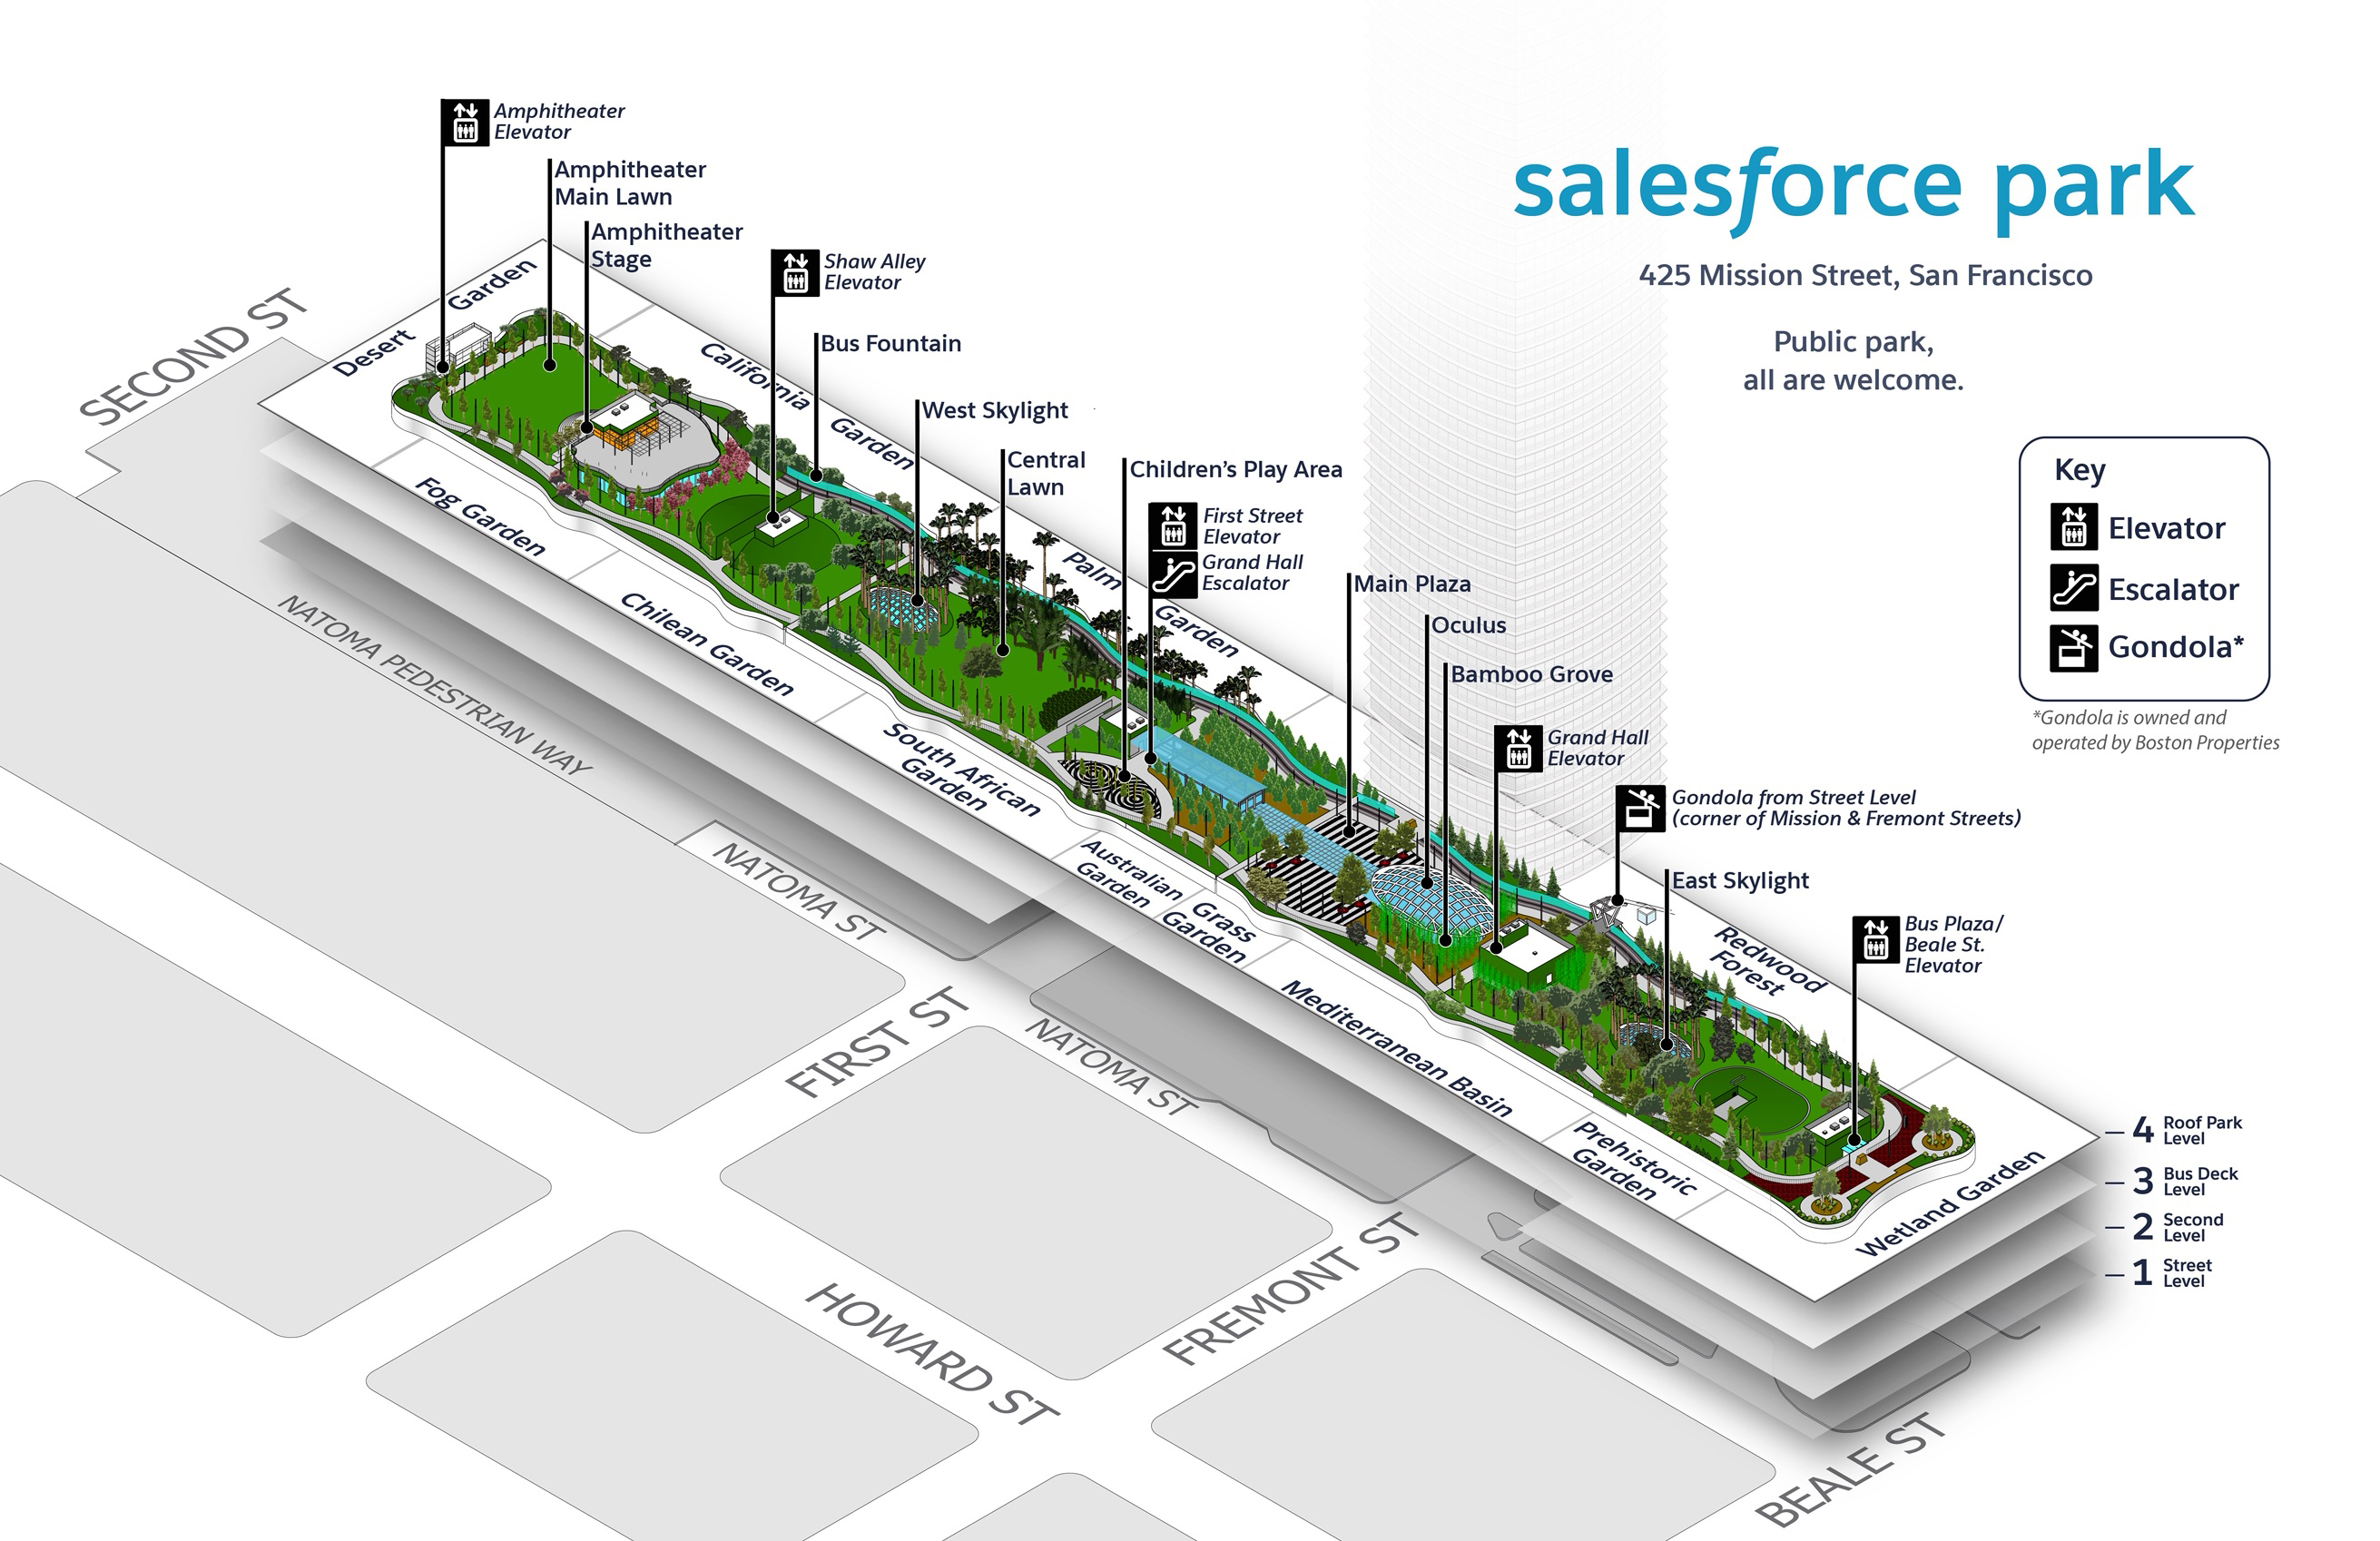 Salesforce Transit Center Map - Salesforce Transit Center